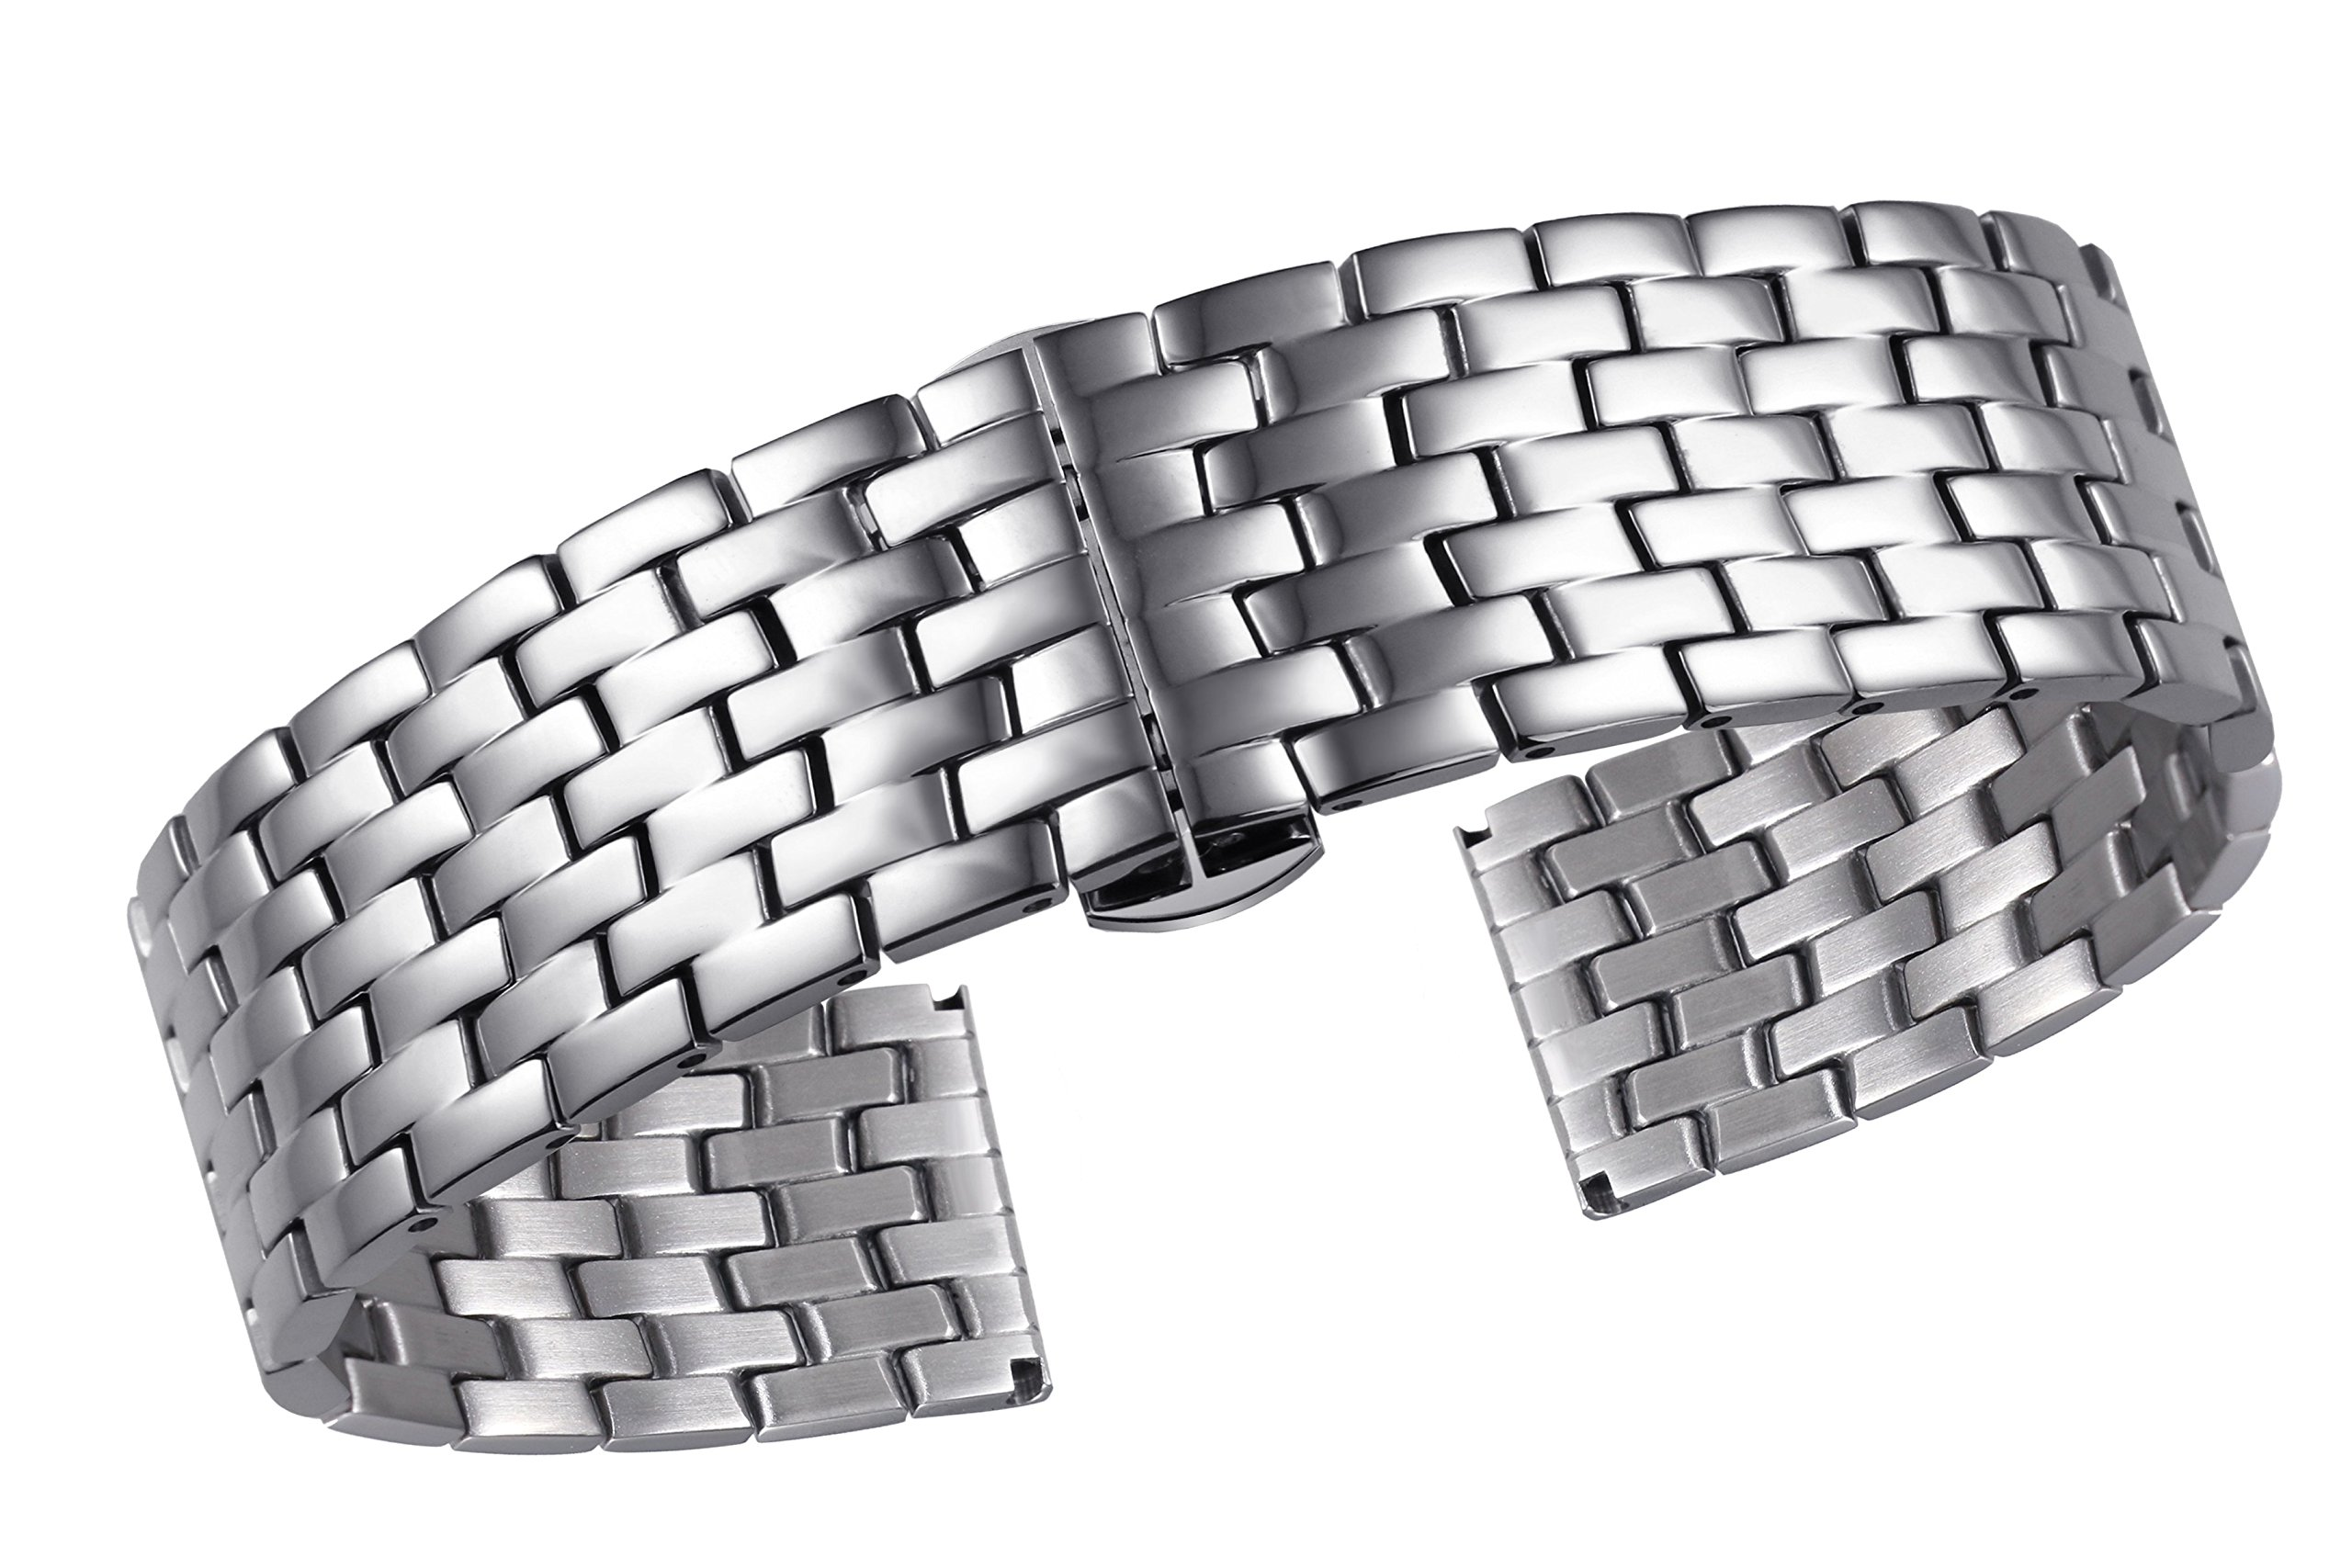 autulet 14mm Ladies' Wonderful Stainless Steel Watch Bracelets in Silver with Solid Links for Small Wrist Watches